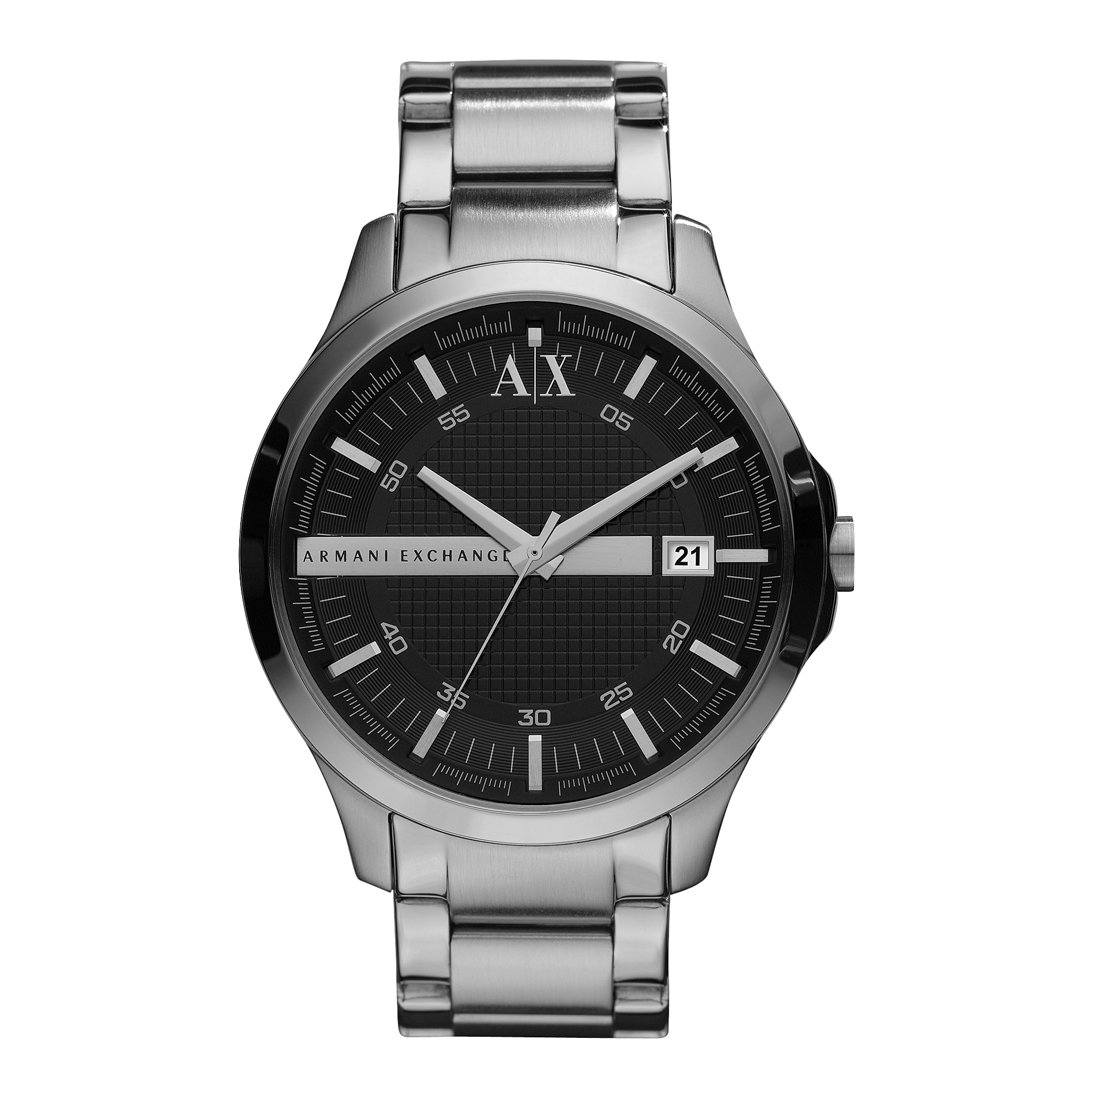 ARMANI EXCHANGE- HAMPTON WATCH BLACK DIAL STAINLESS STEEL